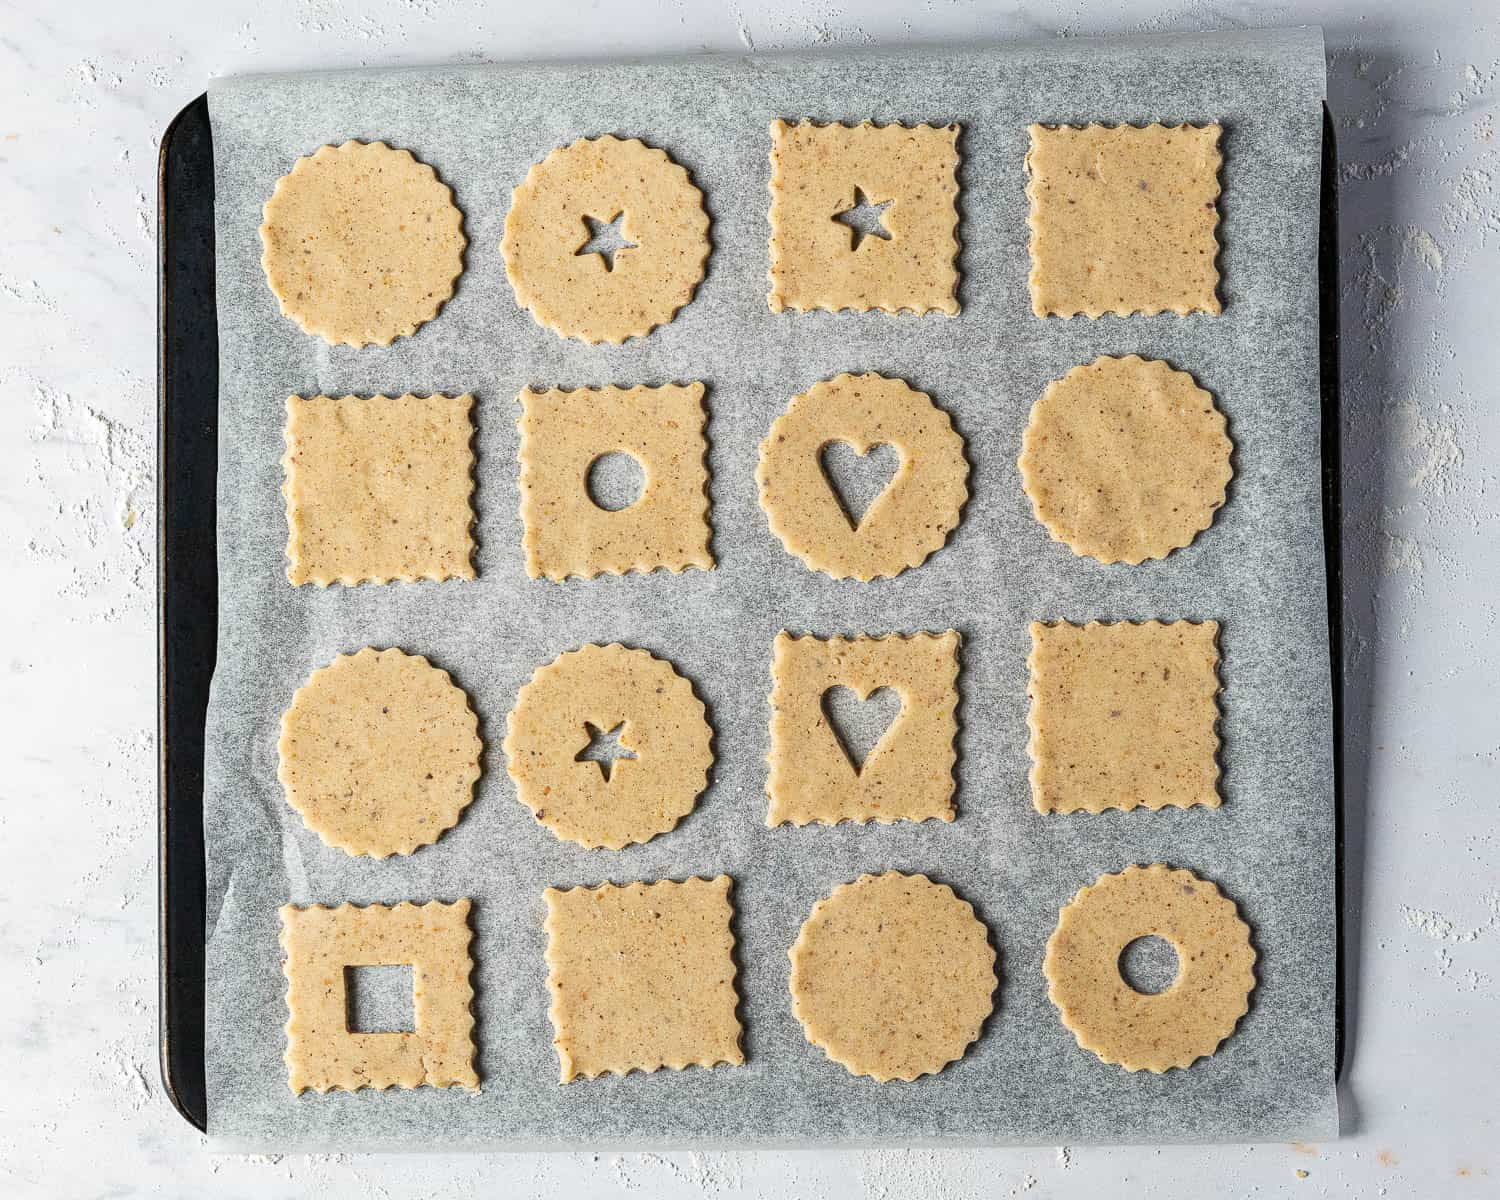 Step 4, the cookie cut outs on a baking sheet.